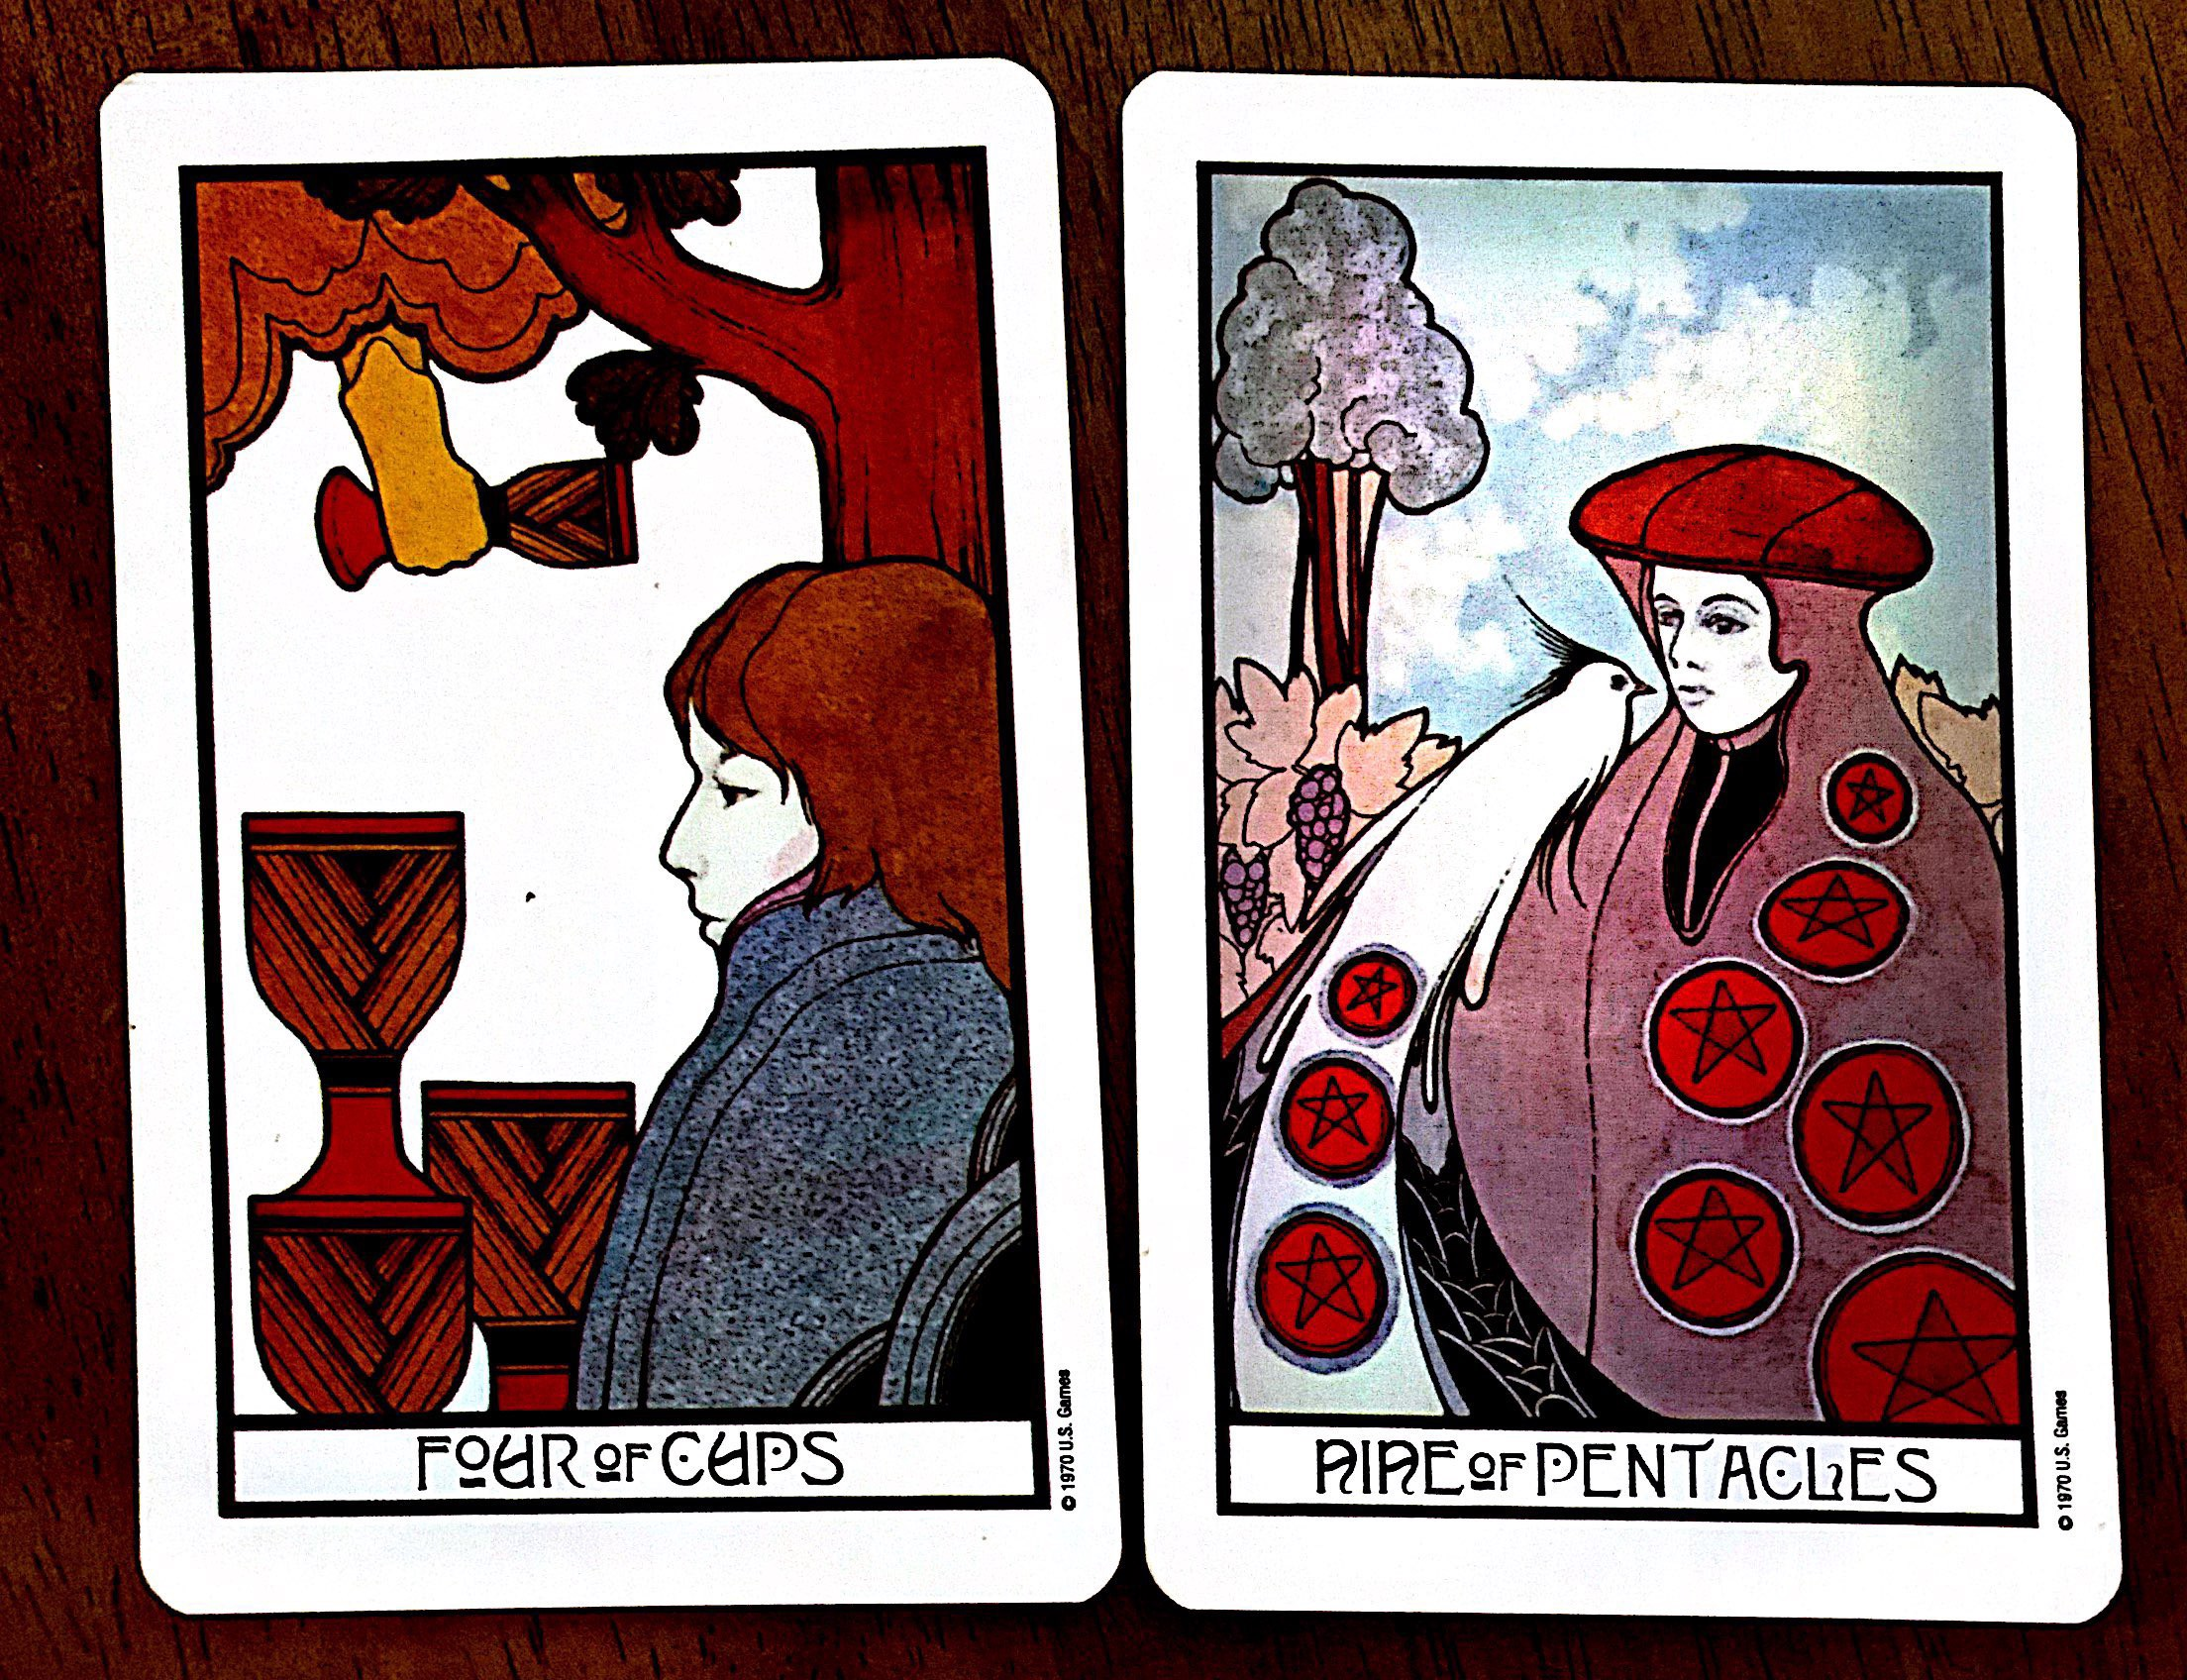 Tarot Meanings Combinations 5 Of Rods 9 Of Pentacles And 4 Of By Heather Cristia Medium Generosity, contentment, security, feasting, harmony, happiness, balance, concord, victory, success, personal satisfaction, advantage, positive energies, material gains. tarot meanings combinations 5 of